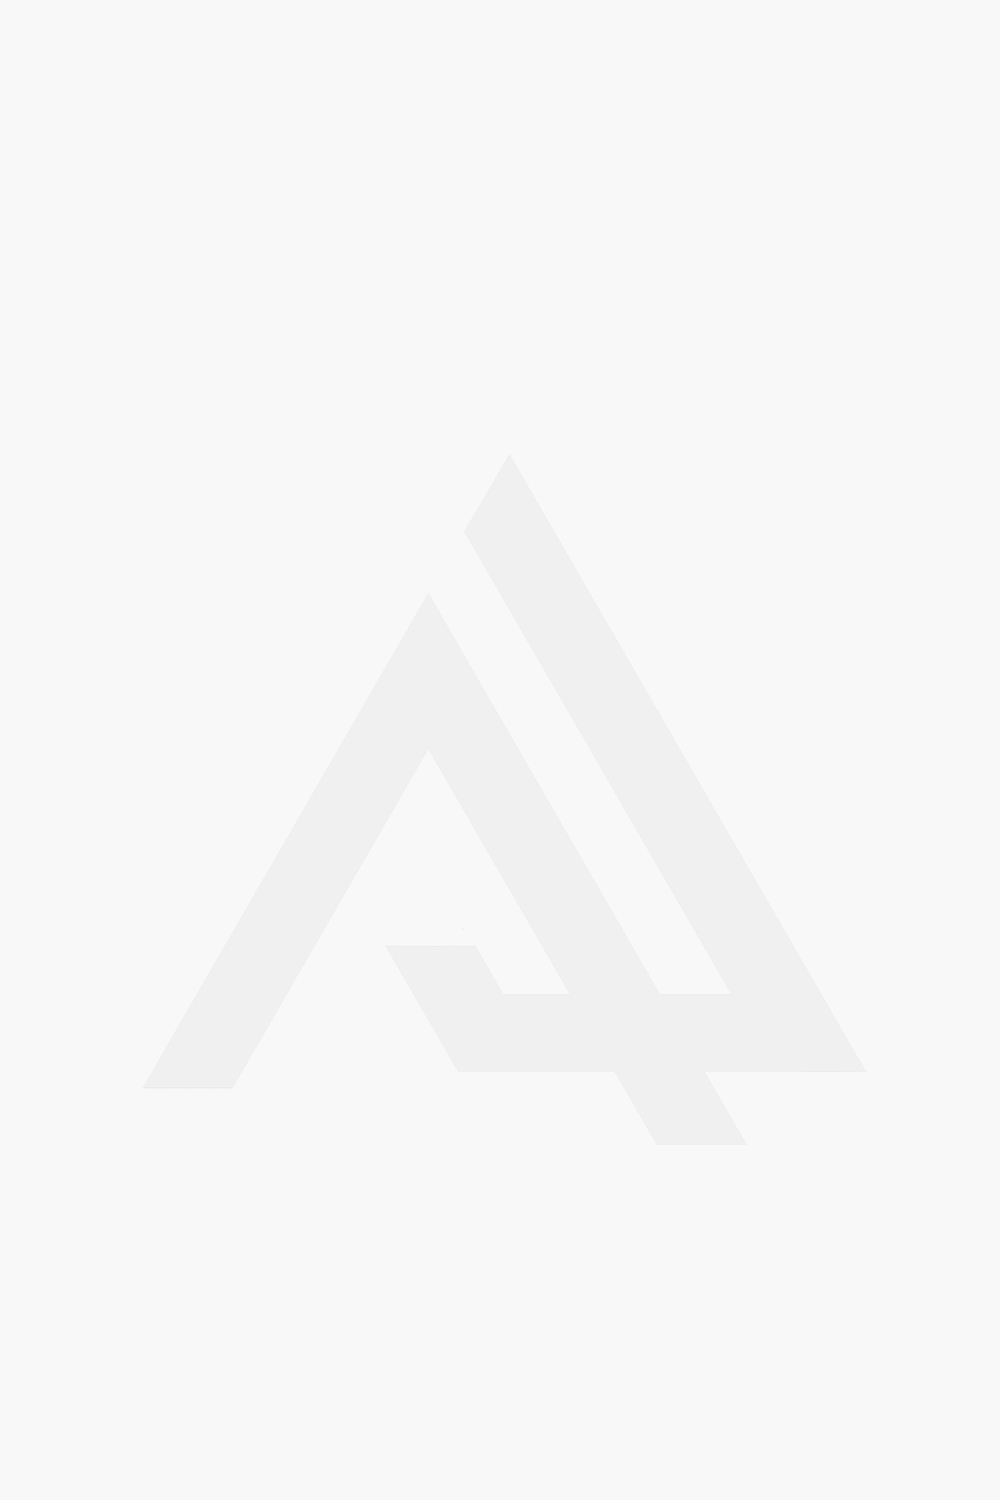 Chevron Cushion Covers, Set of 2